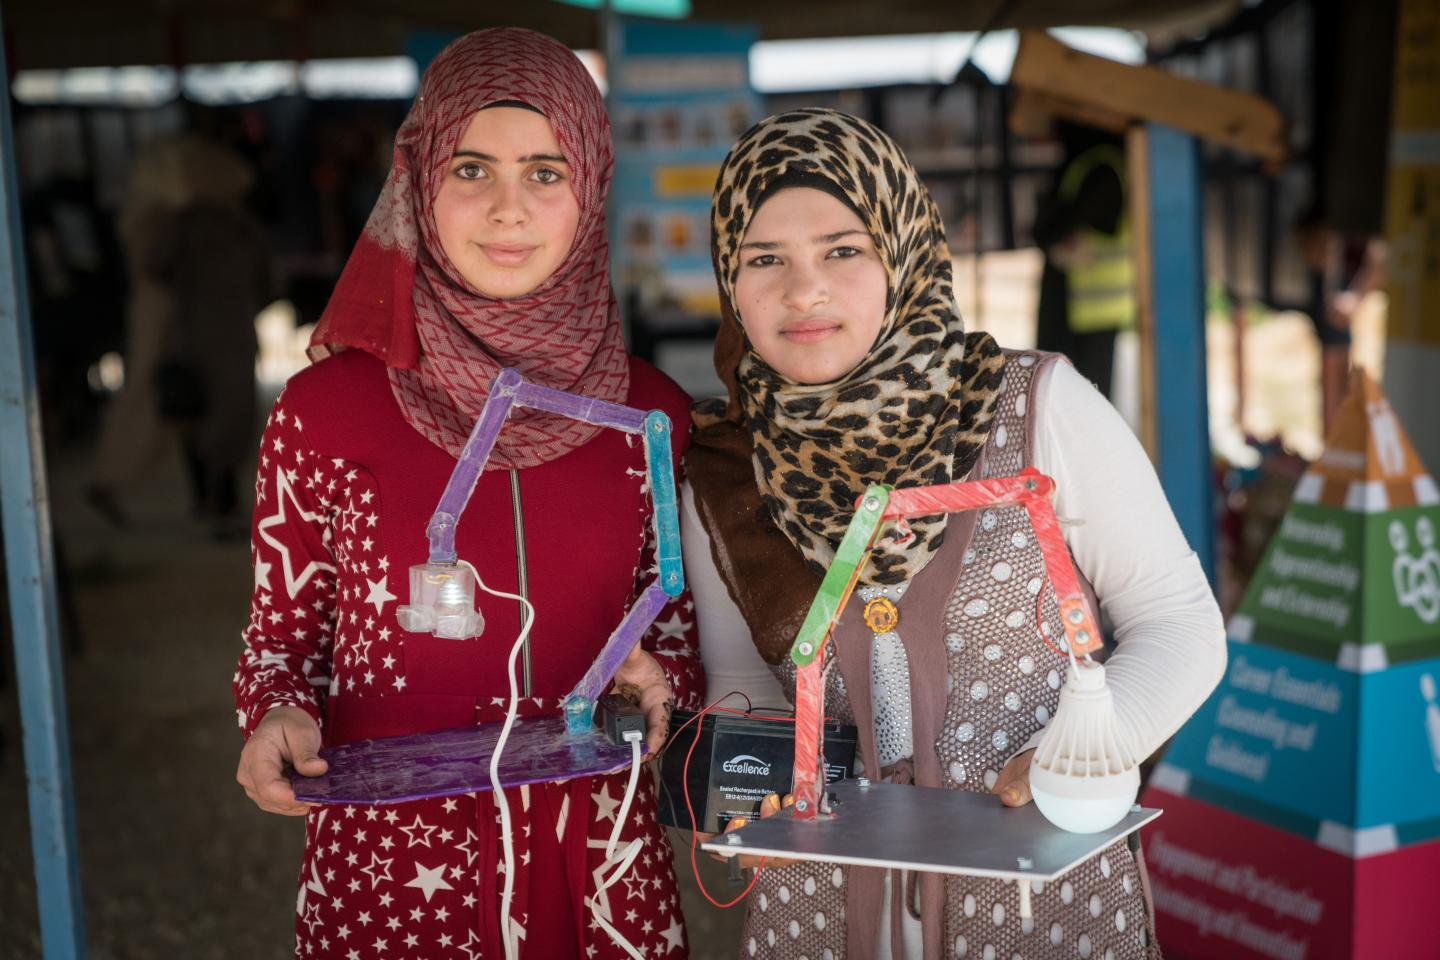 Two young women in headscarves stand together and hold their invention